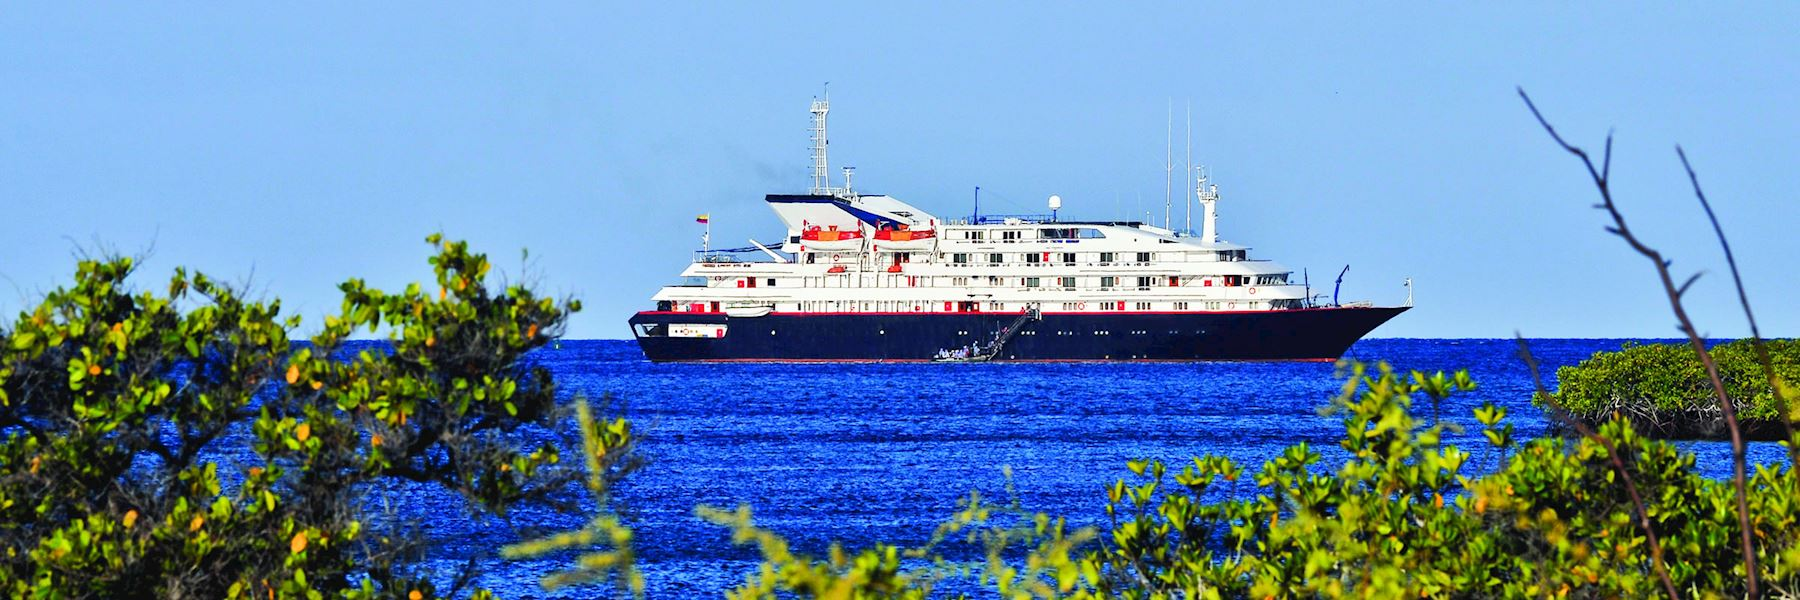 Cruise Ships in The Galapagos Islands: Silver Galapagos